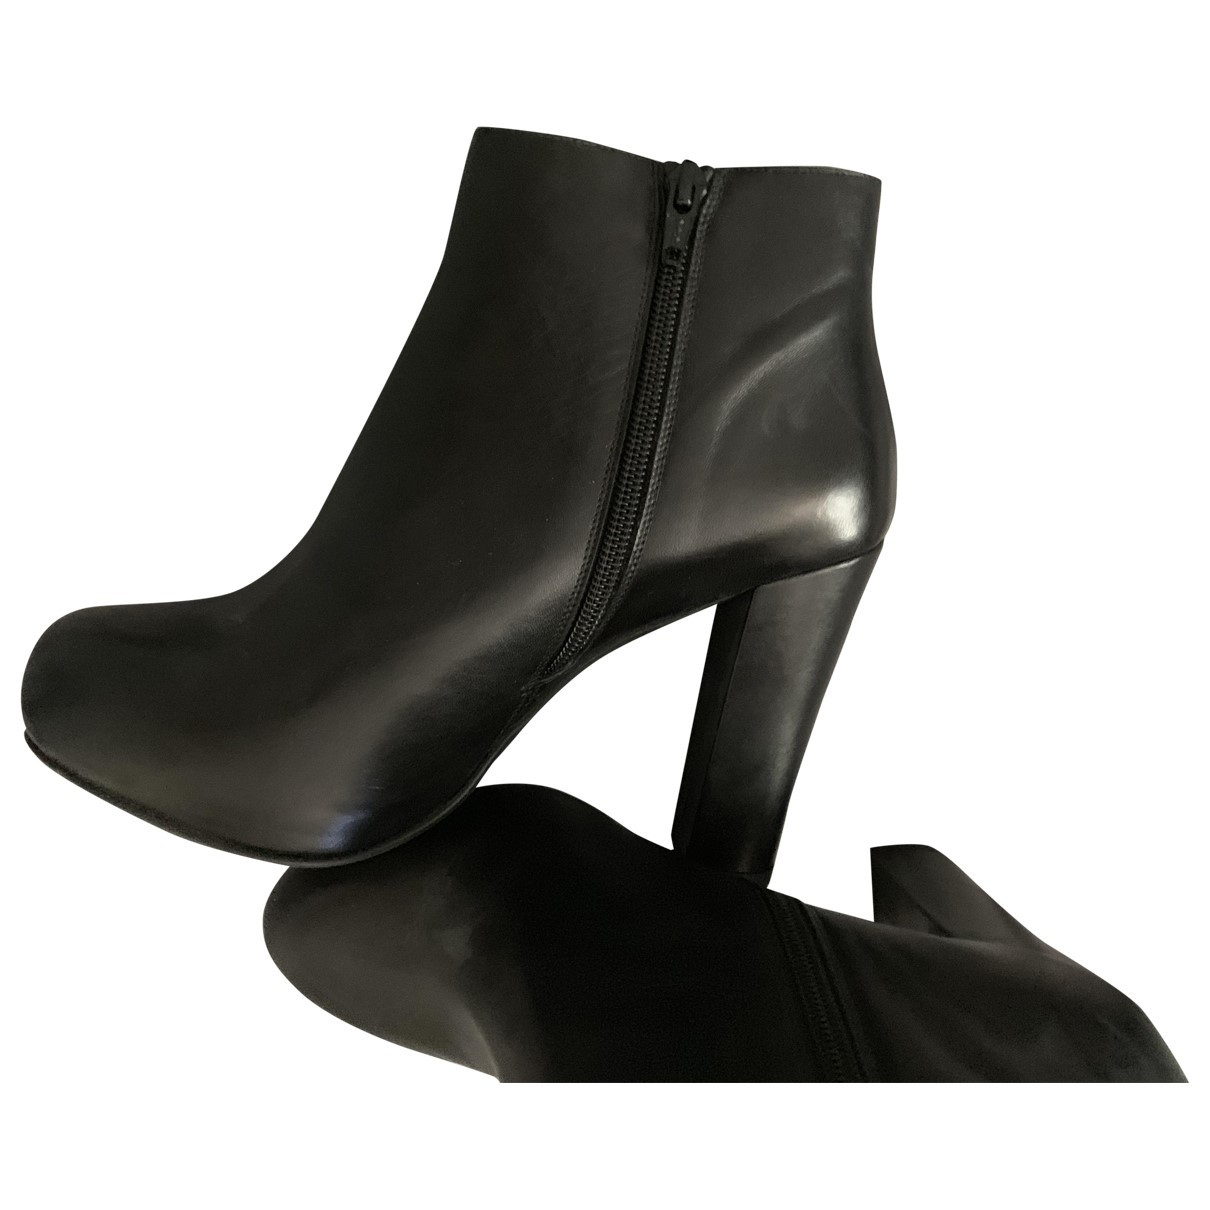 Pollini \N Black Leather Ankle boots for Women 38 EU